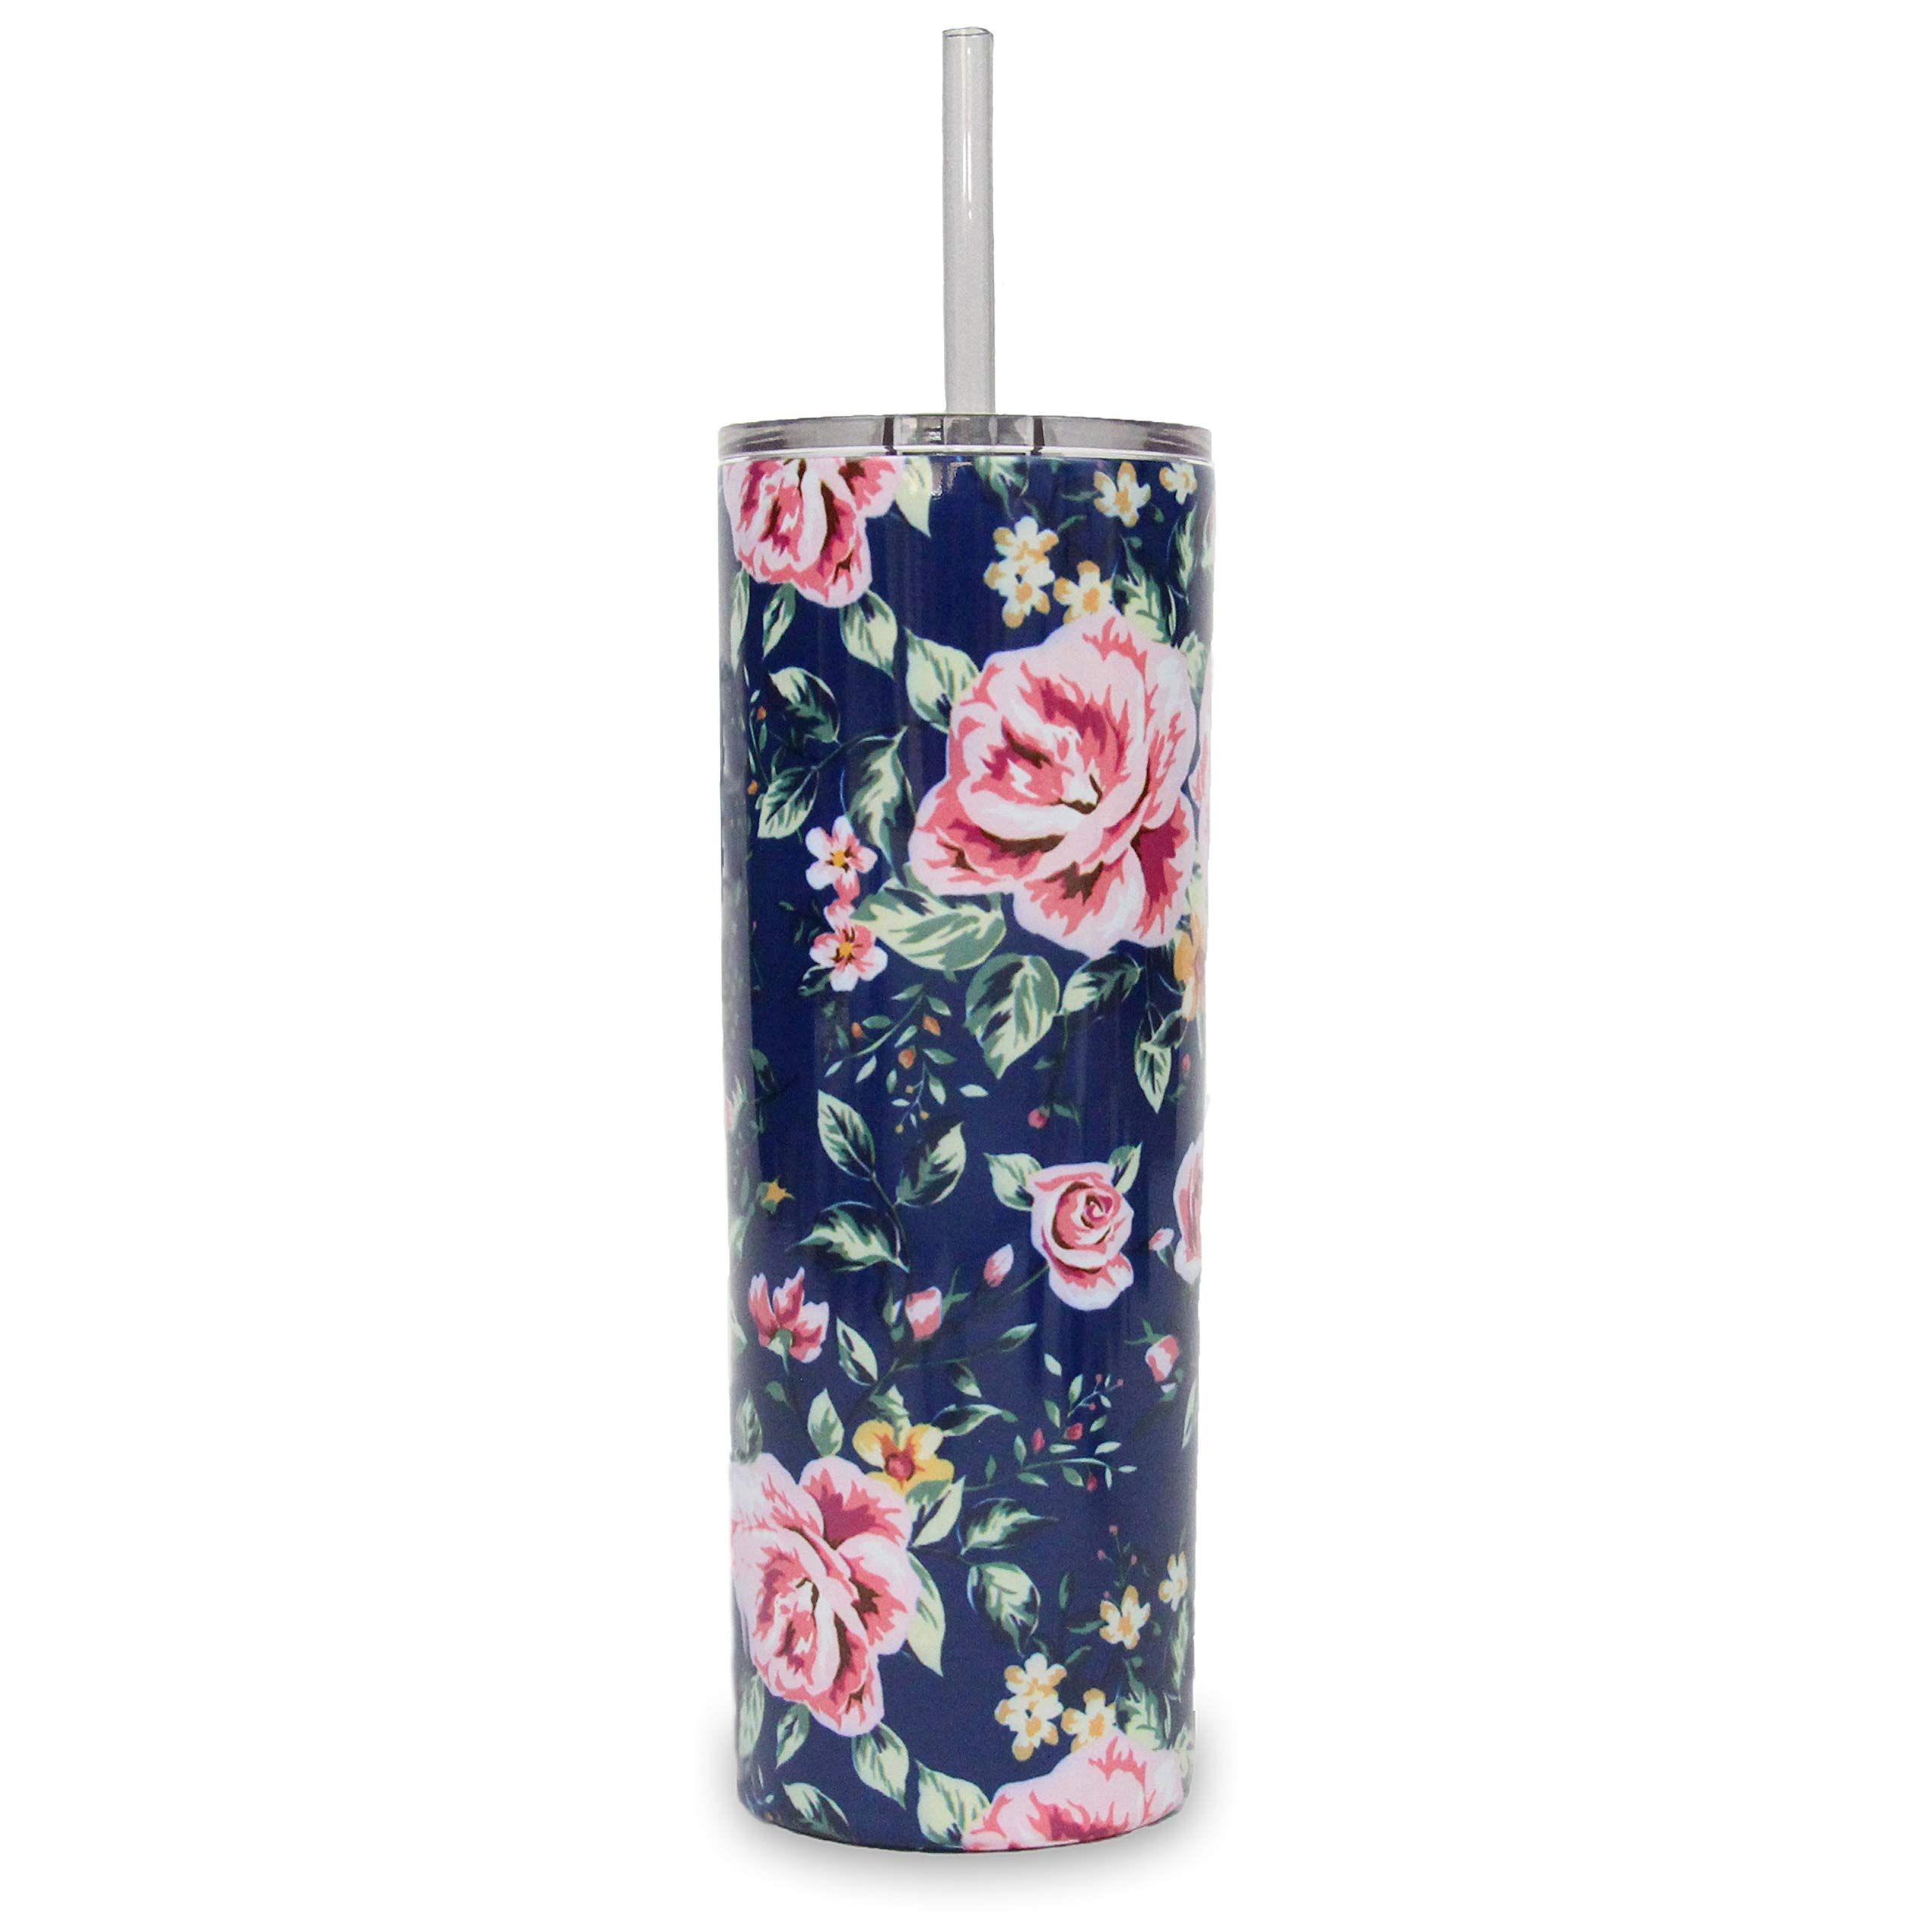 Ice Shaker 20oz Stainless Steel Skinny Tumbler with Lid and Straw (Navy Floral)